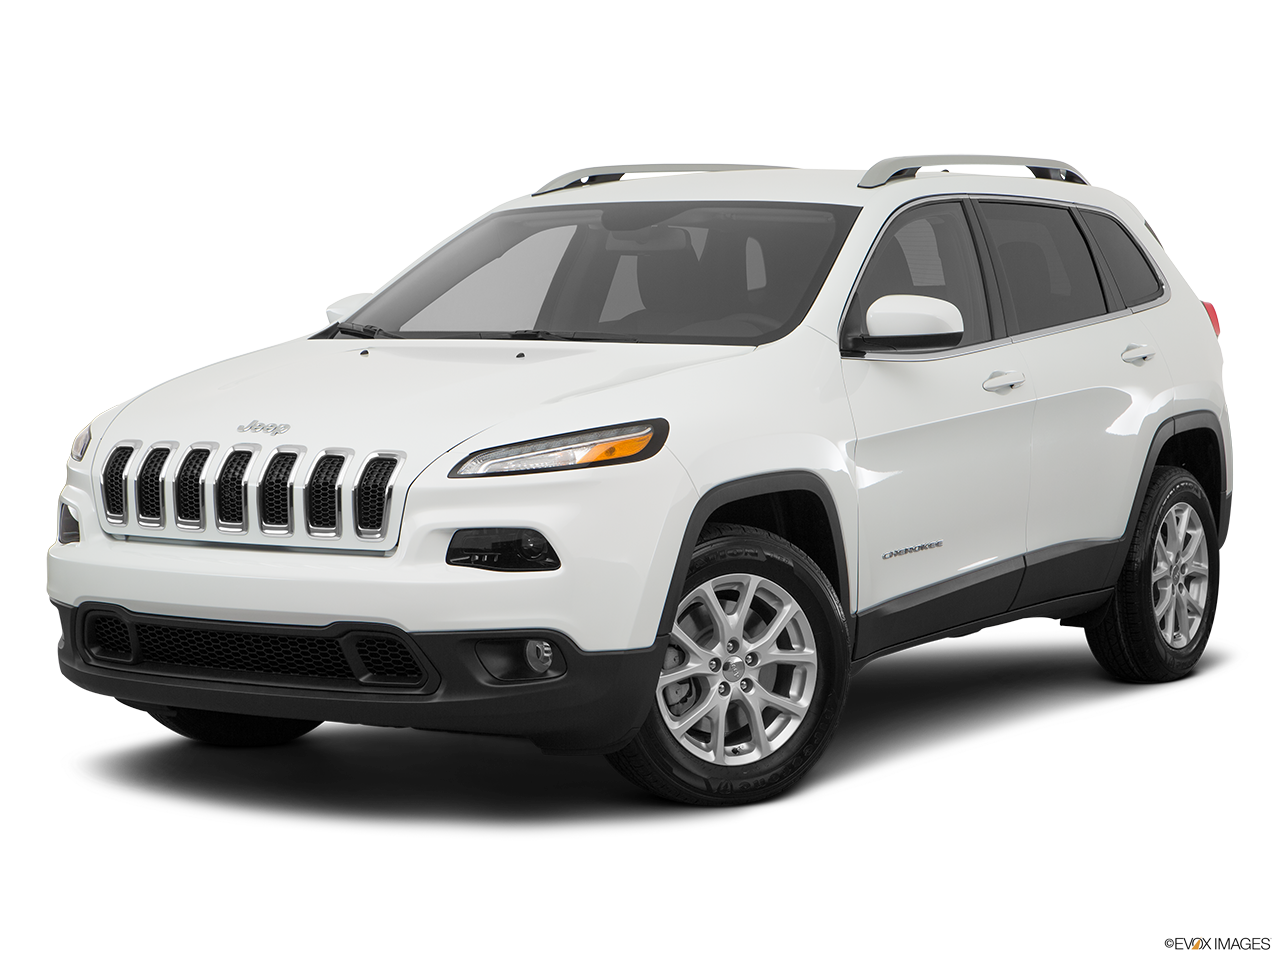 Test Drive A 2017 Jeep Cherokee at Nashville Chrysler Dodge Jeep RAM in Antioch